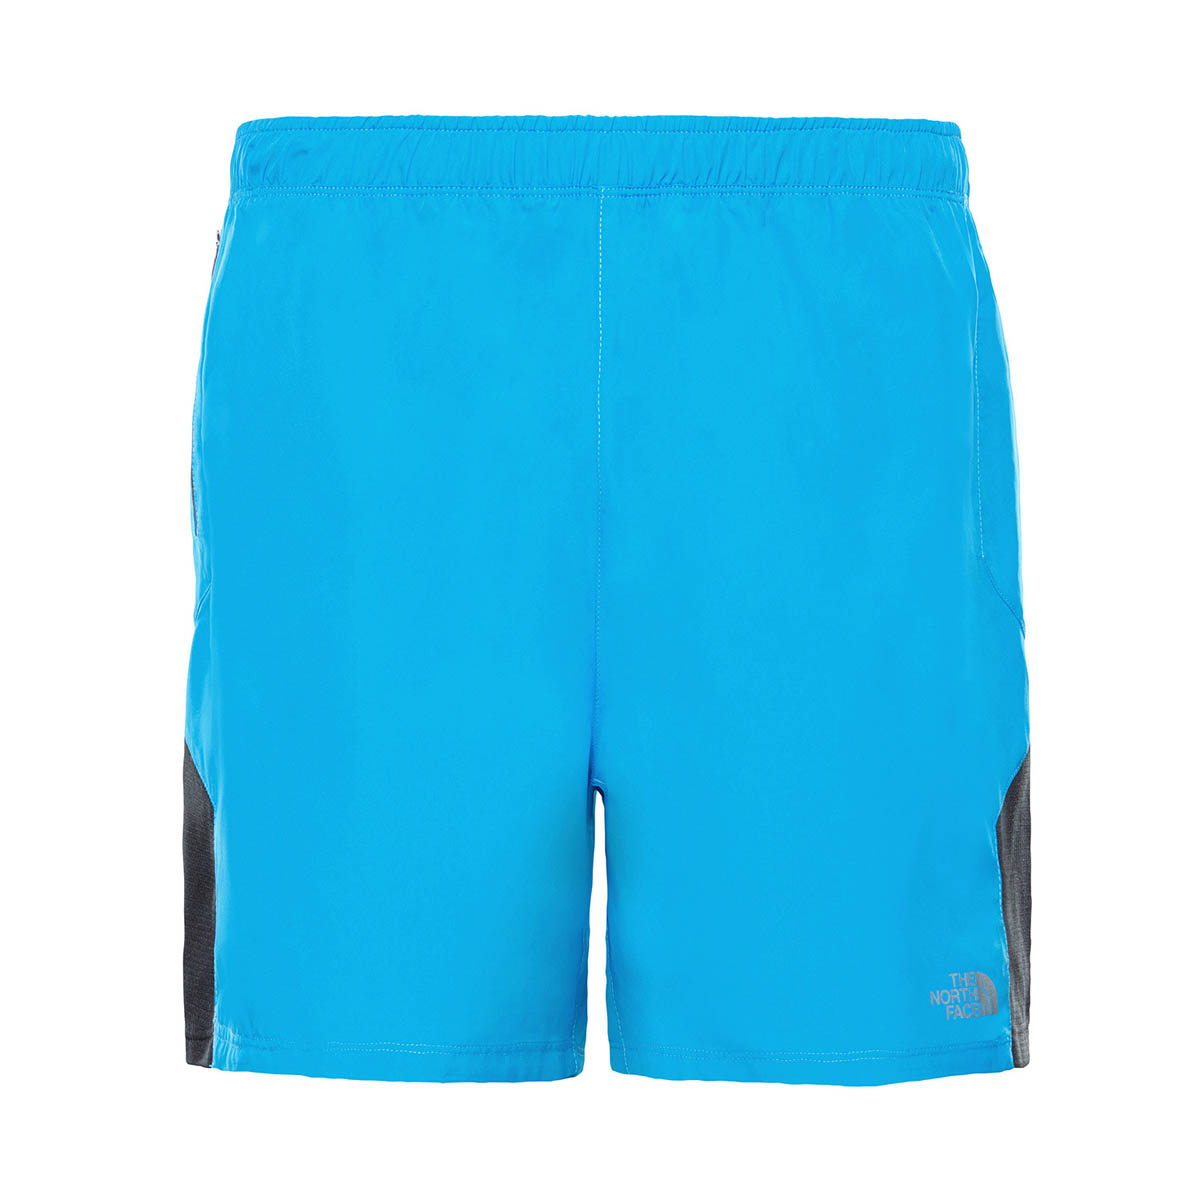 THE NORTH FACE - AMBITION SHORTS